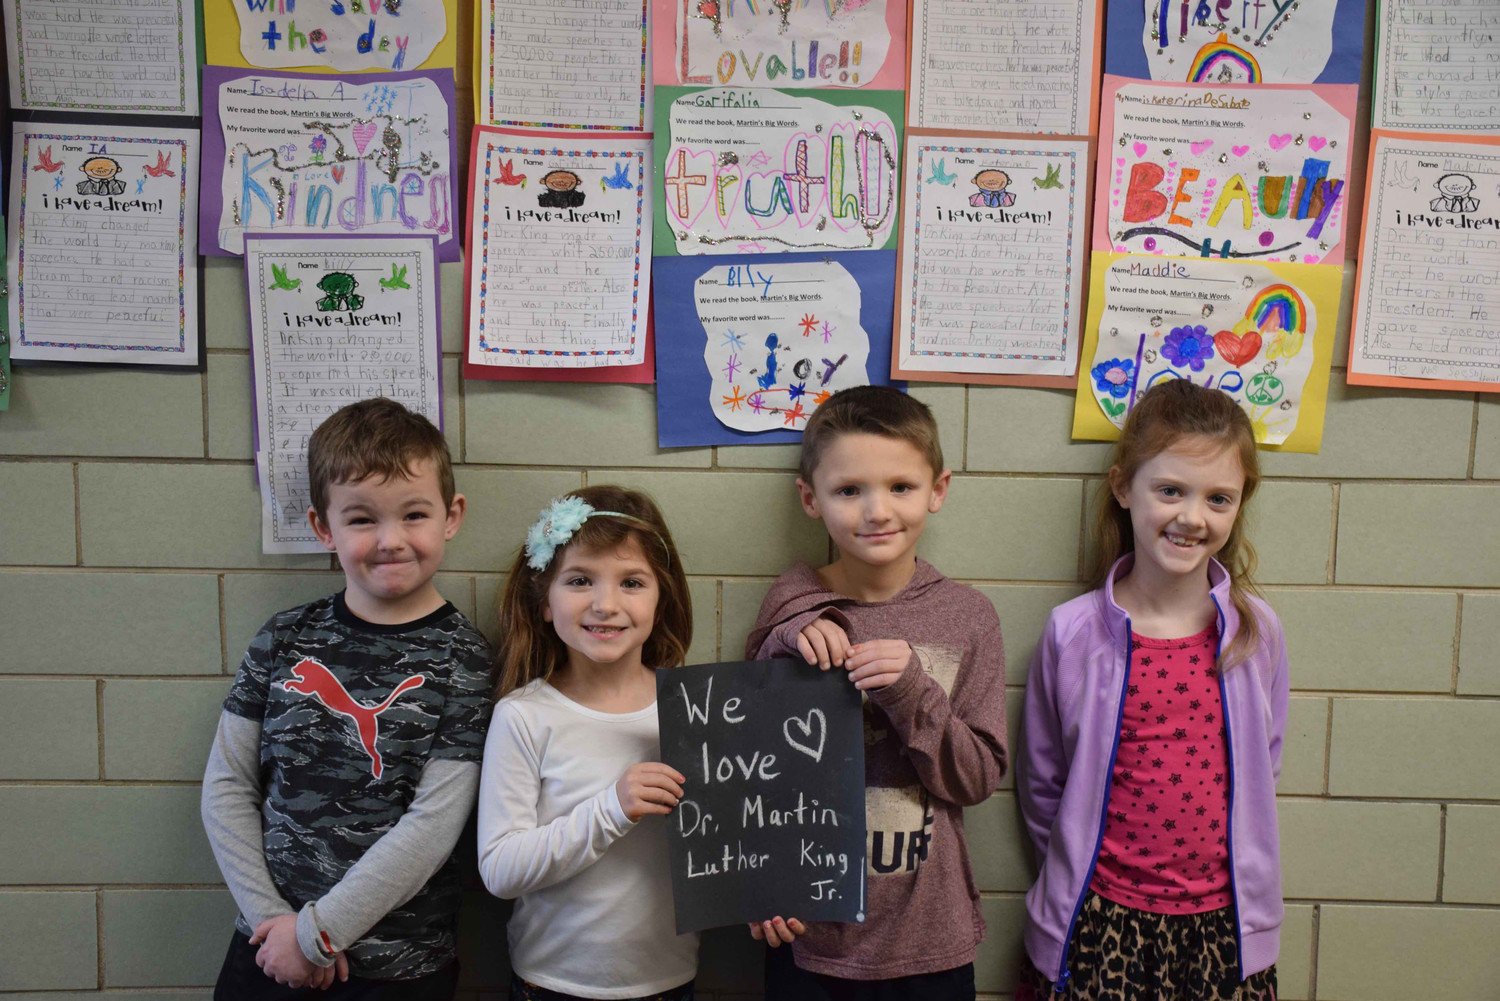 First-graders Billy Gazsy, left, Garifalia Vatougios, Brendan Radicone and Maddie Burns analyzed Dr. King's dream.